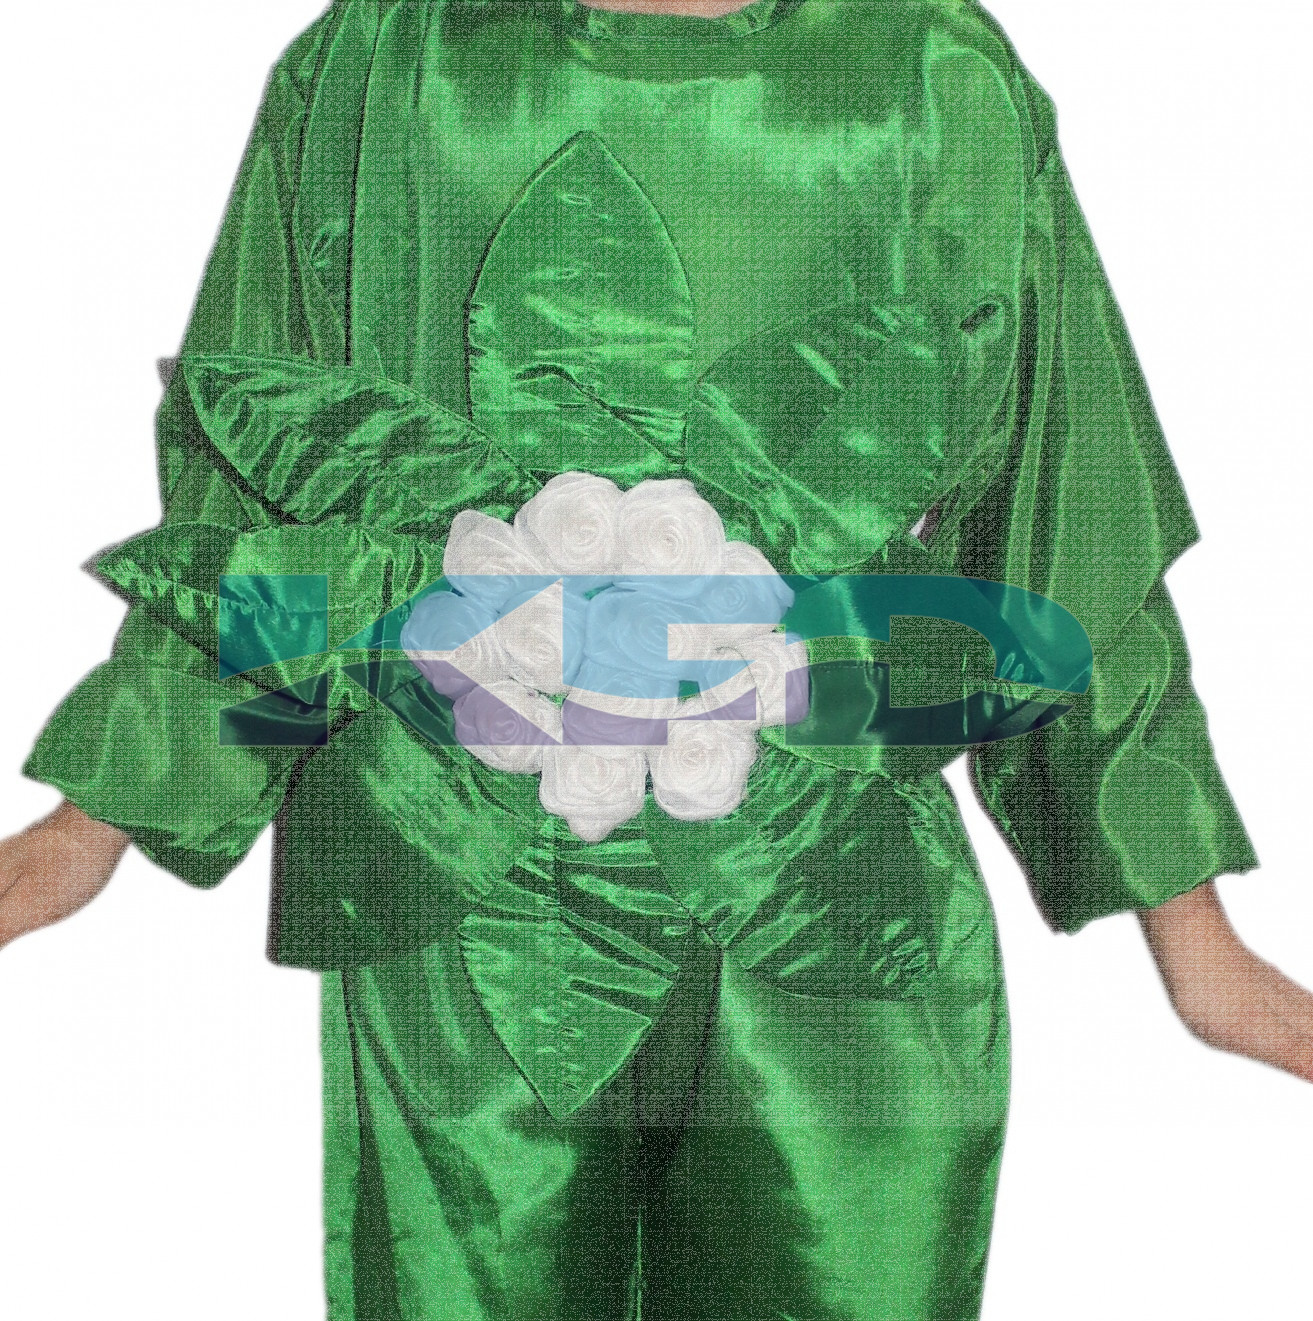 Cauliflower Vegetables Costume only cutout with Cap for Annual function/Theme Party/Competition/Stage Shows/Birthday Party Dress